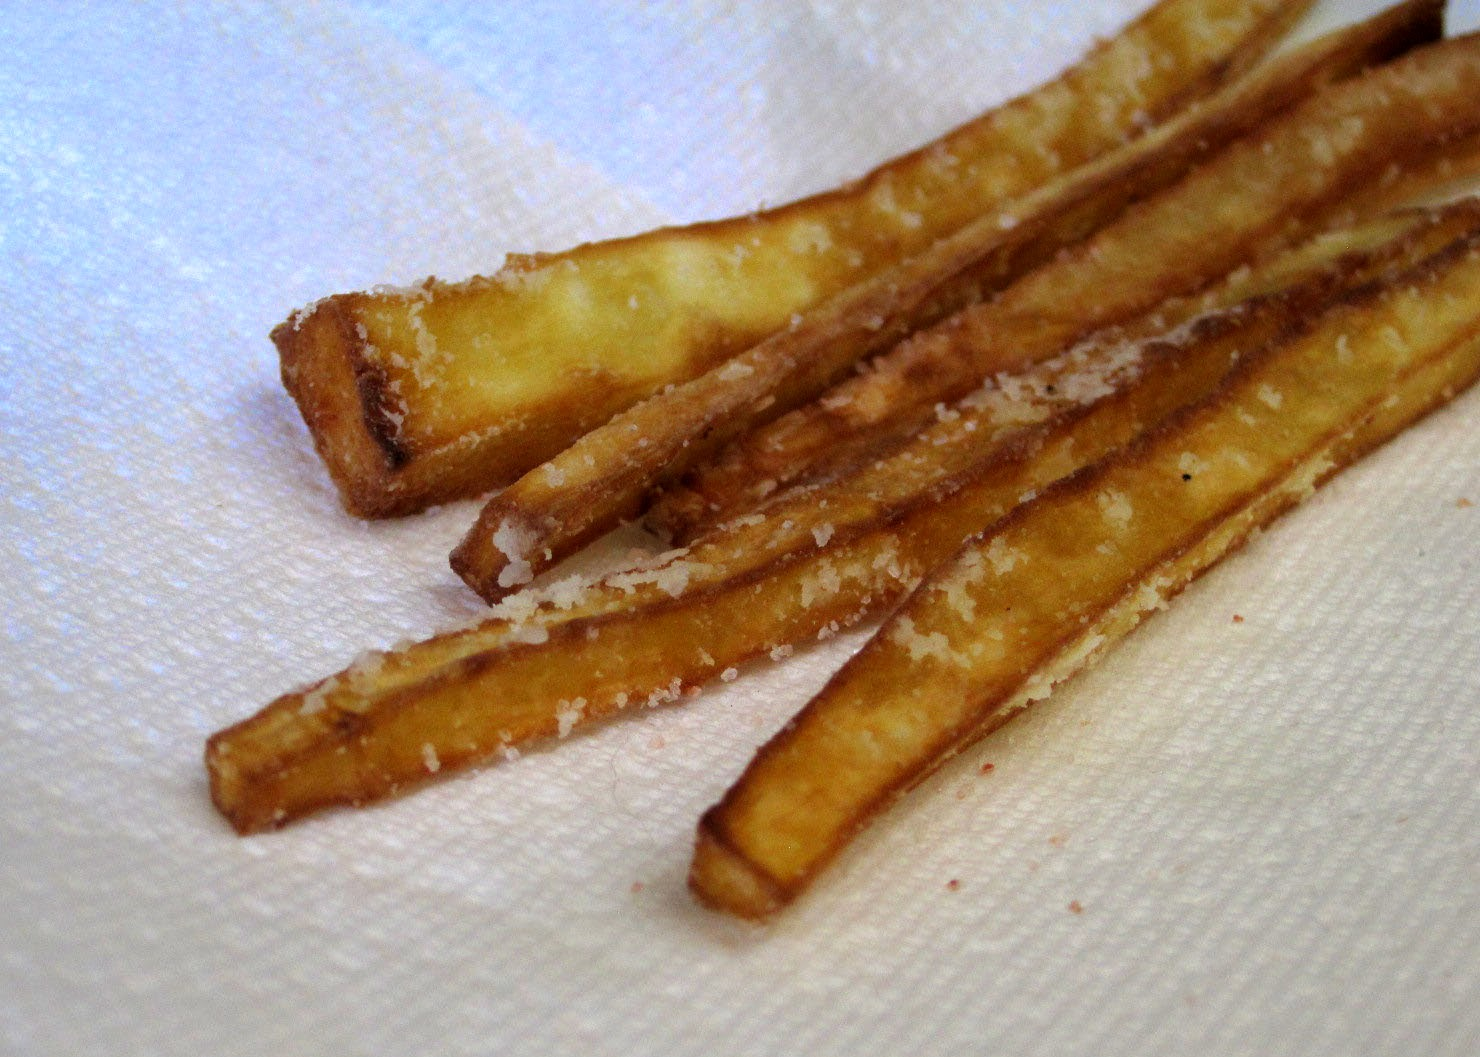 AIP autoimmune protocol, crispy parsnip fries recipe